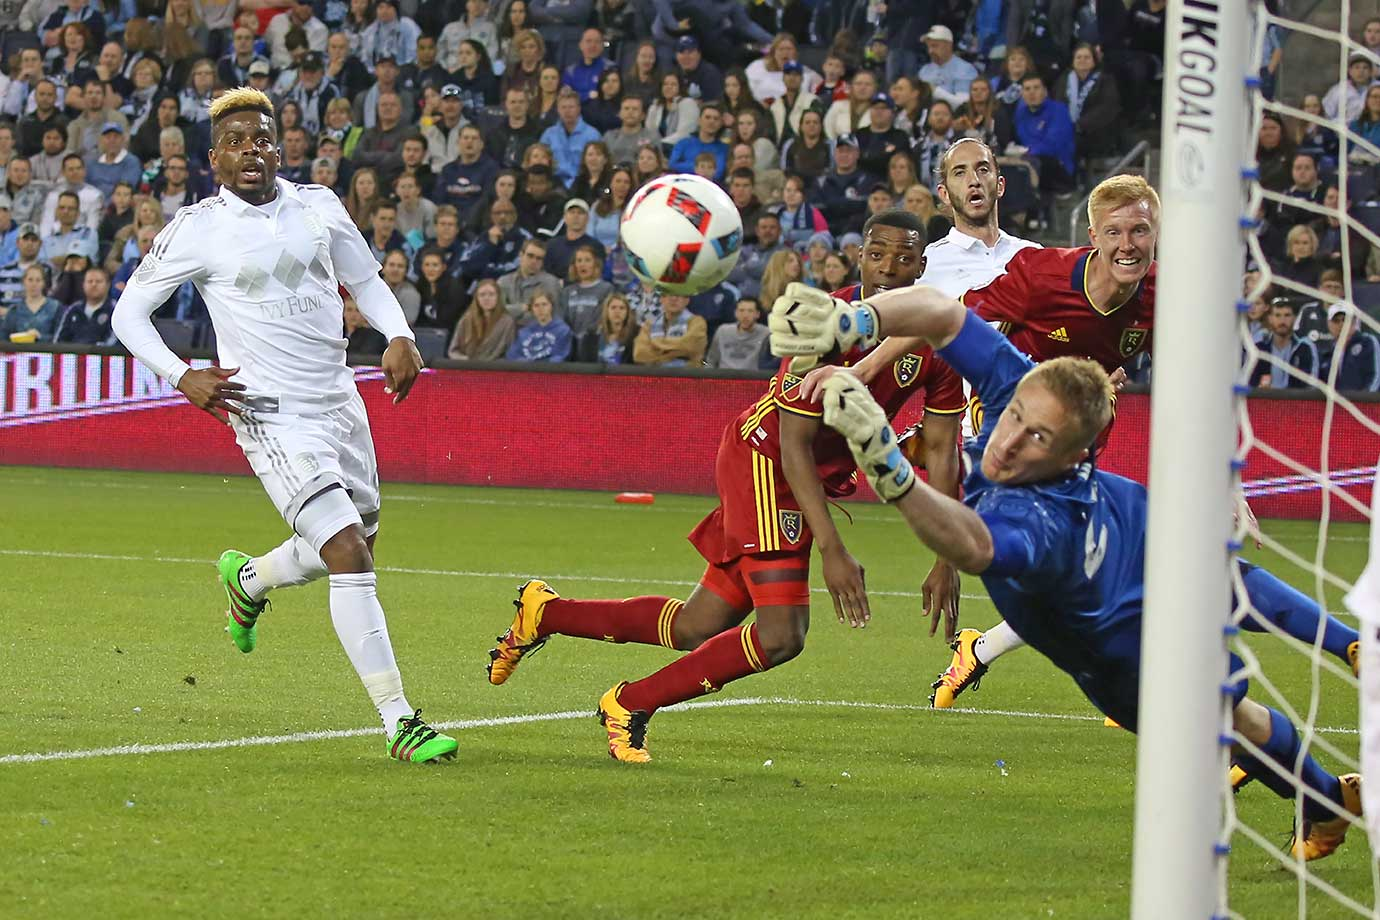 Sporting Kansas City goalkeeper Tim Melia can't stop the header from Real Salt Lake defender Justen Glad for a goal.